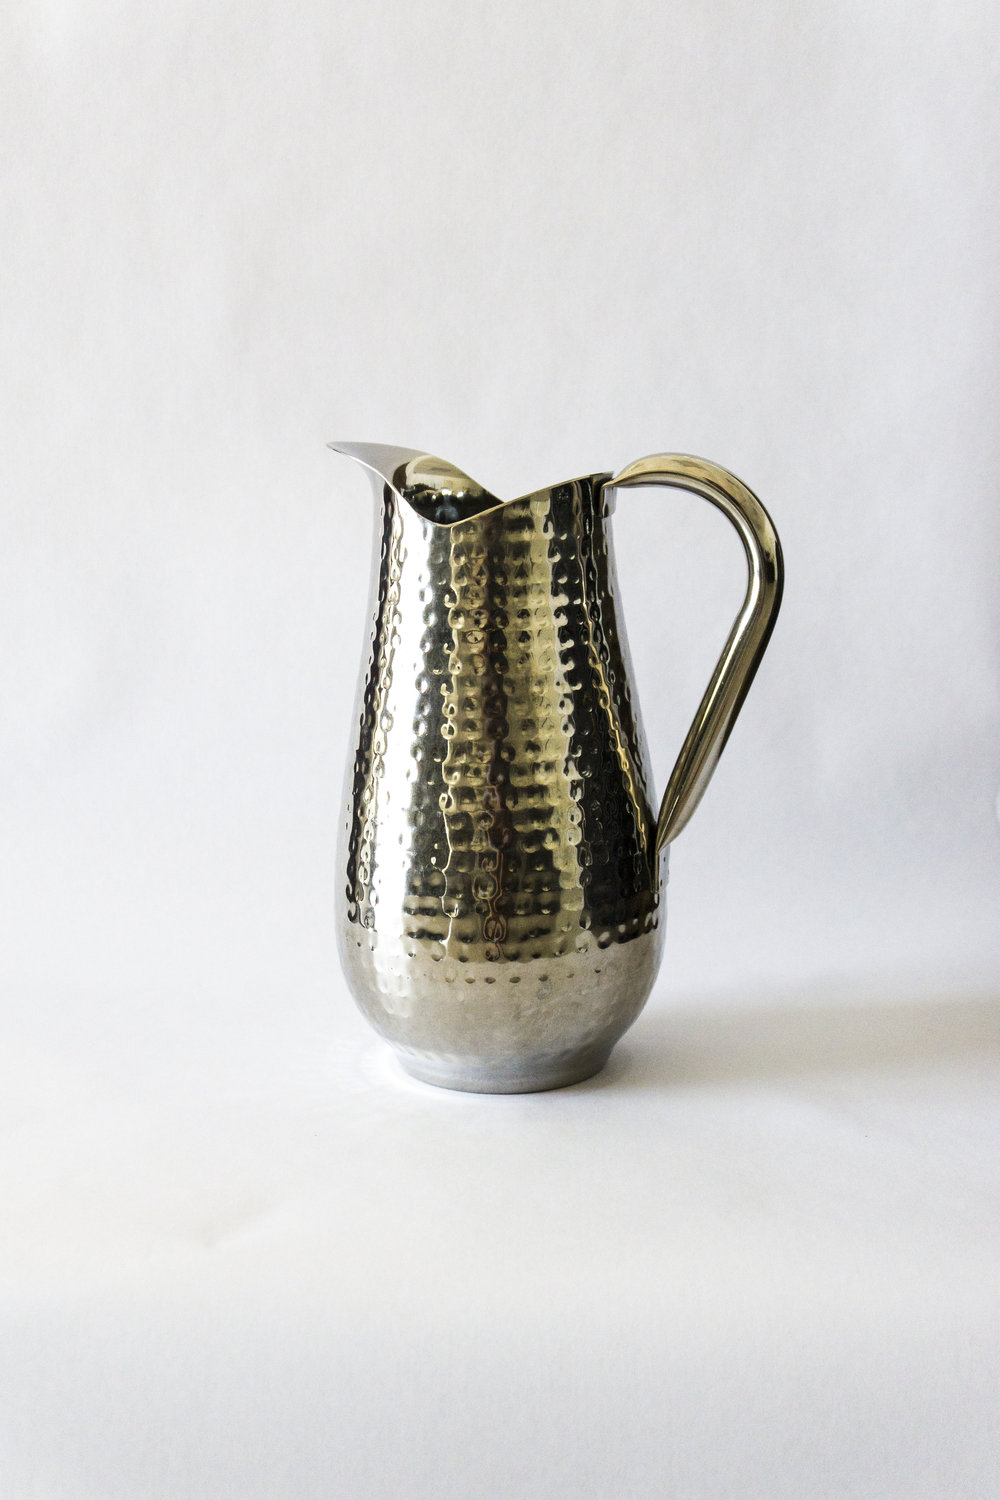 Stainless Steel Hammered Water Pitcher  $6.00